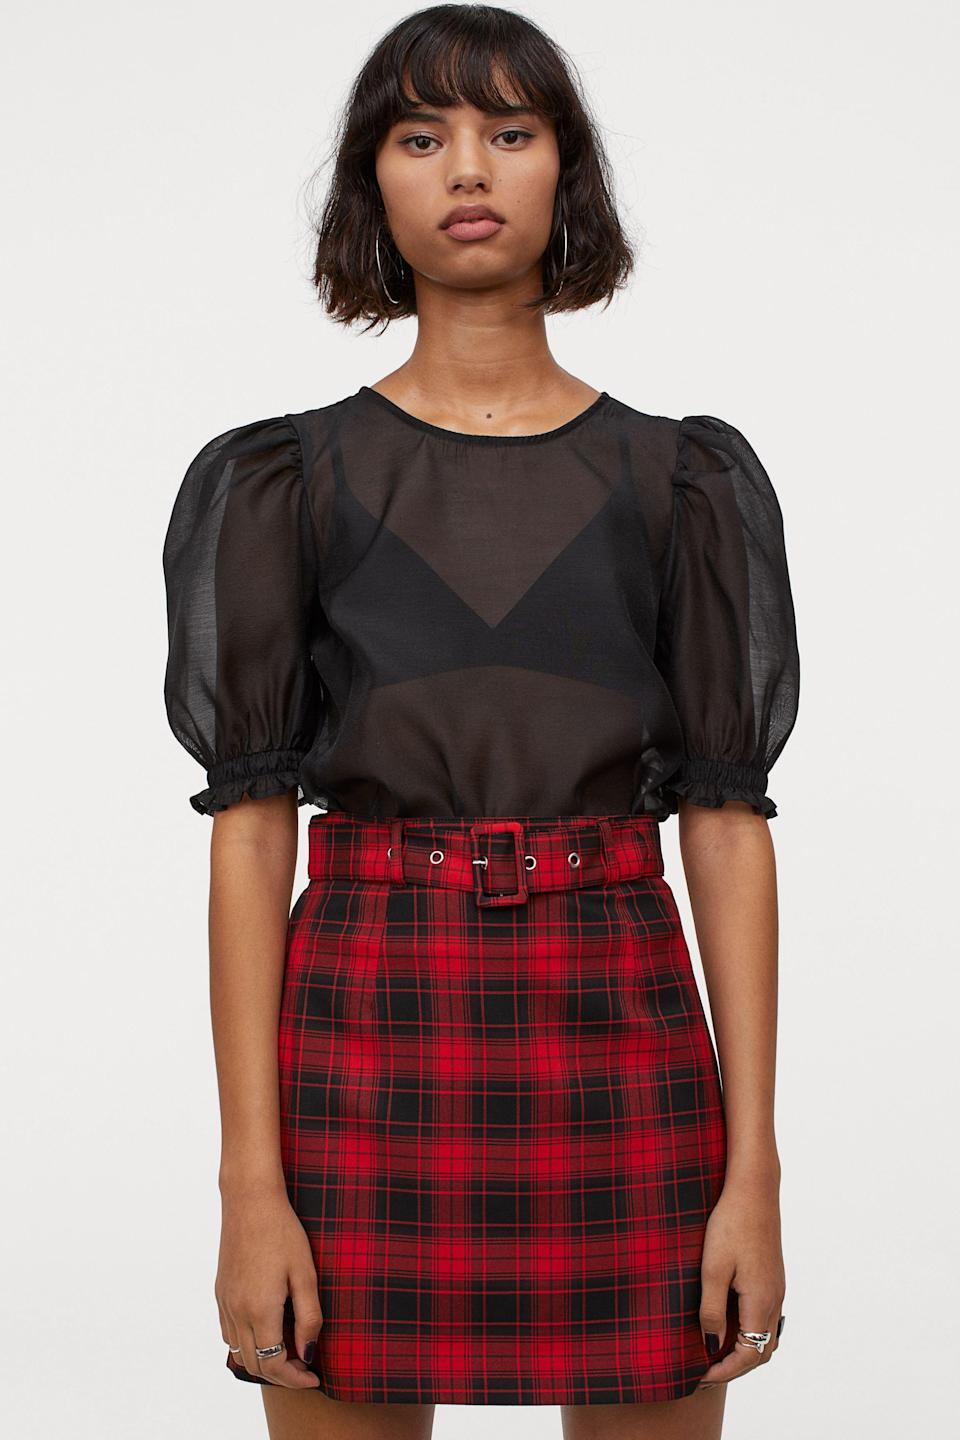 """<p><strong>H&M</strong></p><p>hm.com</p><p><strong>$24.99</strong></p><p><a href=""""https://go.redirectingat.com?id=74968X1596630&url=https%3A%2F%2Fwww2.hm.com%2Fen_us%2Fproductpage.0777892011.html&sref=https%3A%2F%2Fwww.seventeen.com%2Ffashion%2Ftrends%2Fg31932109%2Fbest-teen-stores%2F"""" rel=""""nofollow noopener"""" target=""""_blank"""" data-ylk=""""slk:Shop Now"""" class=""""link rapid-noclick-resp"""">Shop Now</a></p><p>Designer collabs at crazy-affordable prices? Count me in. <a href=""""https://go.redirectingat.com?id=74968X1596630&url=https%3A%2F%2Fwww2.hm.com%2Fen_us%2Findex.html&sref=https%3A%2F%2Fwww.seventeen.com%2Ffashion%2Ftrends%2Fg31932109%2Fbest-teen-stores%2F"""" rel=""""nofollow noopener"""" target=""""_blank"""" data-ylk=""""slk:H&M"""" class=""""link rapid-noclick-resp"""">H&M</a> has literally everything on your shopping list, from every-day T-shirts to stylish dresses you could wear for your next school dance. </p>"""